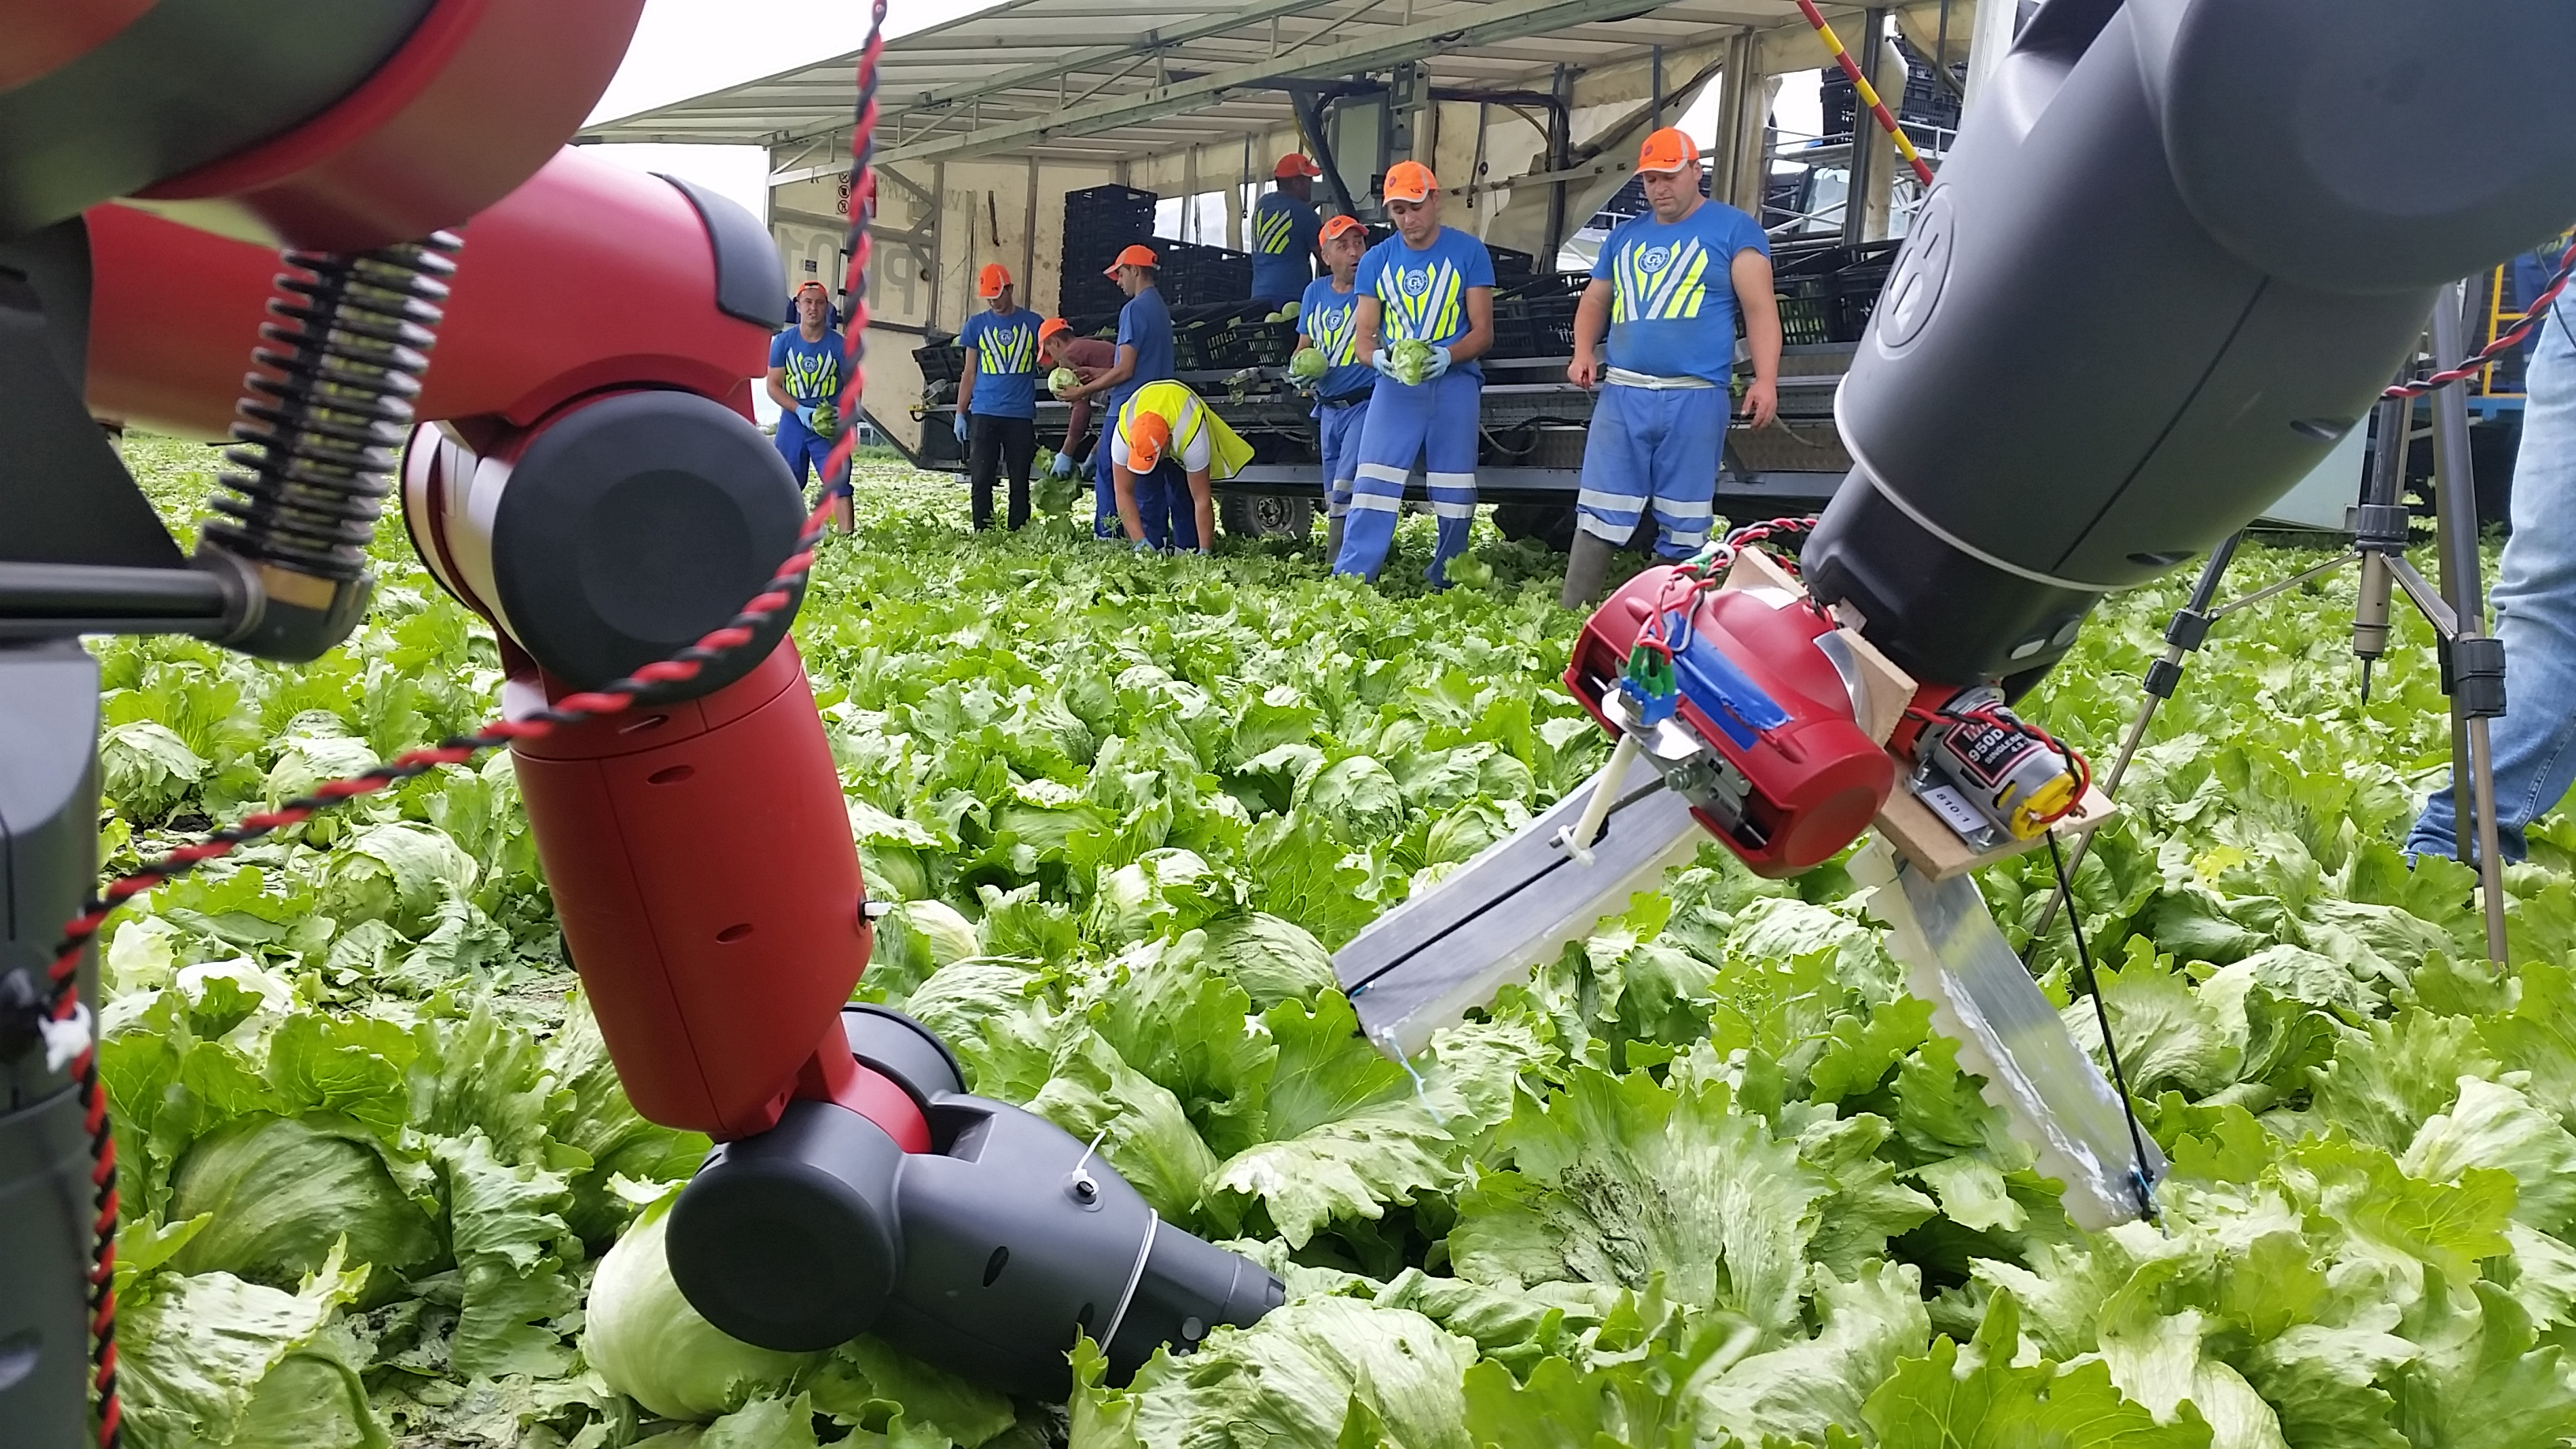 Robots emerging as agricultural co-workers